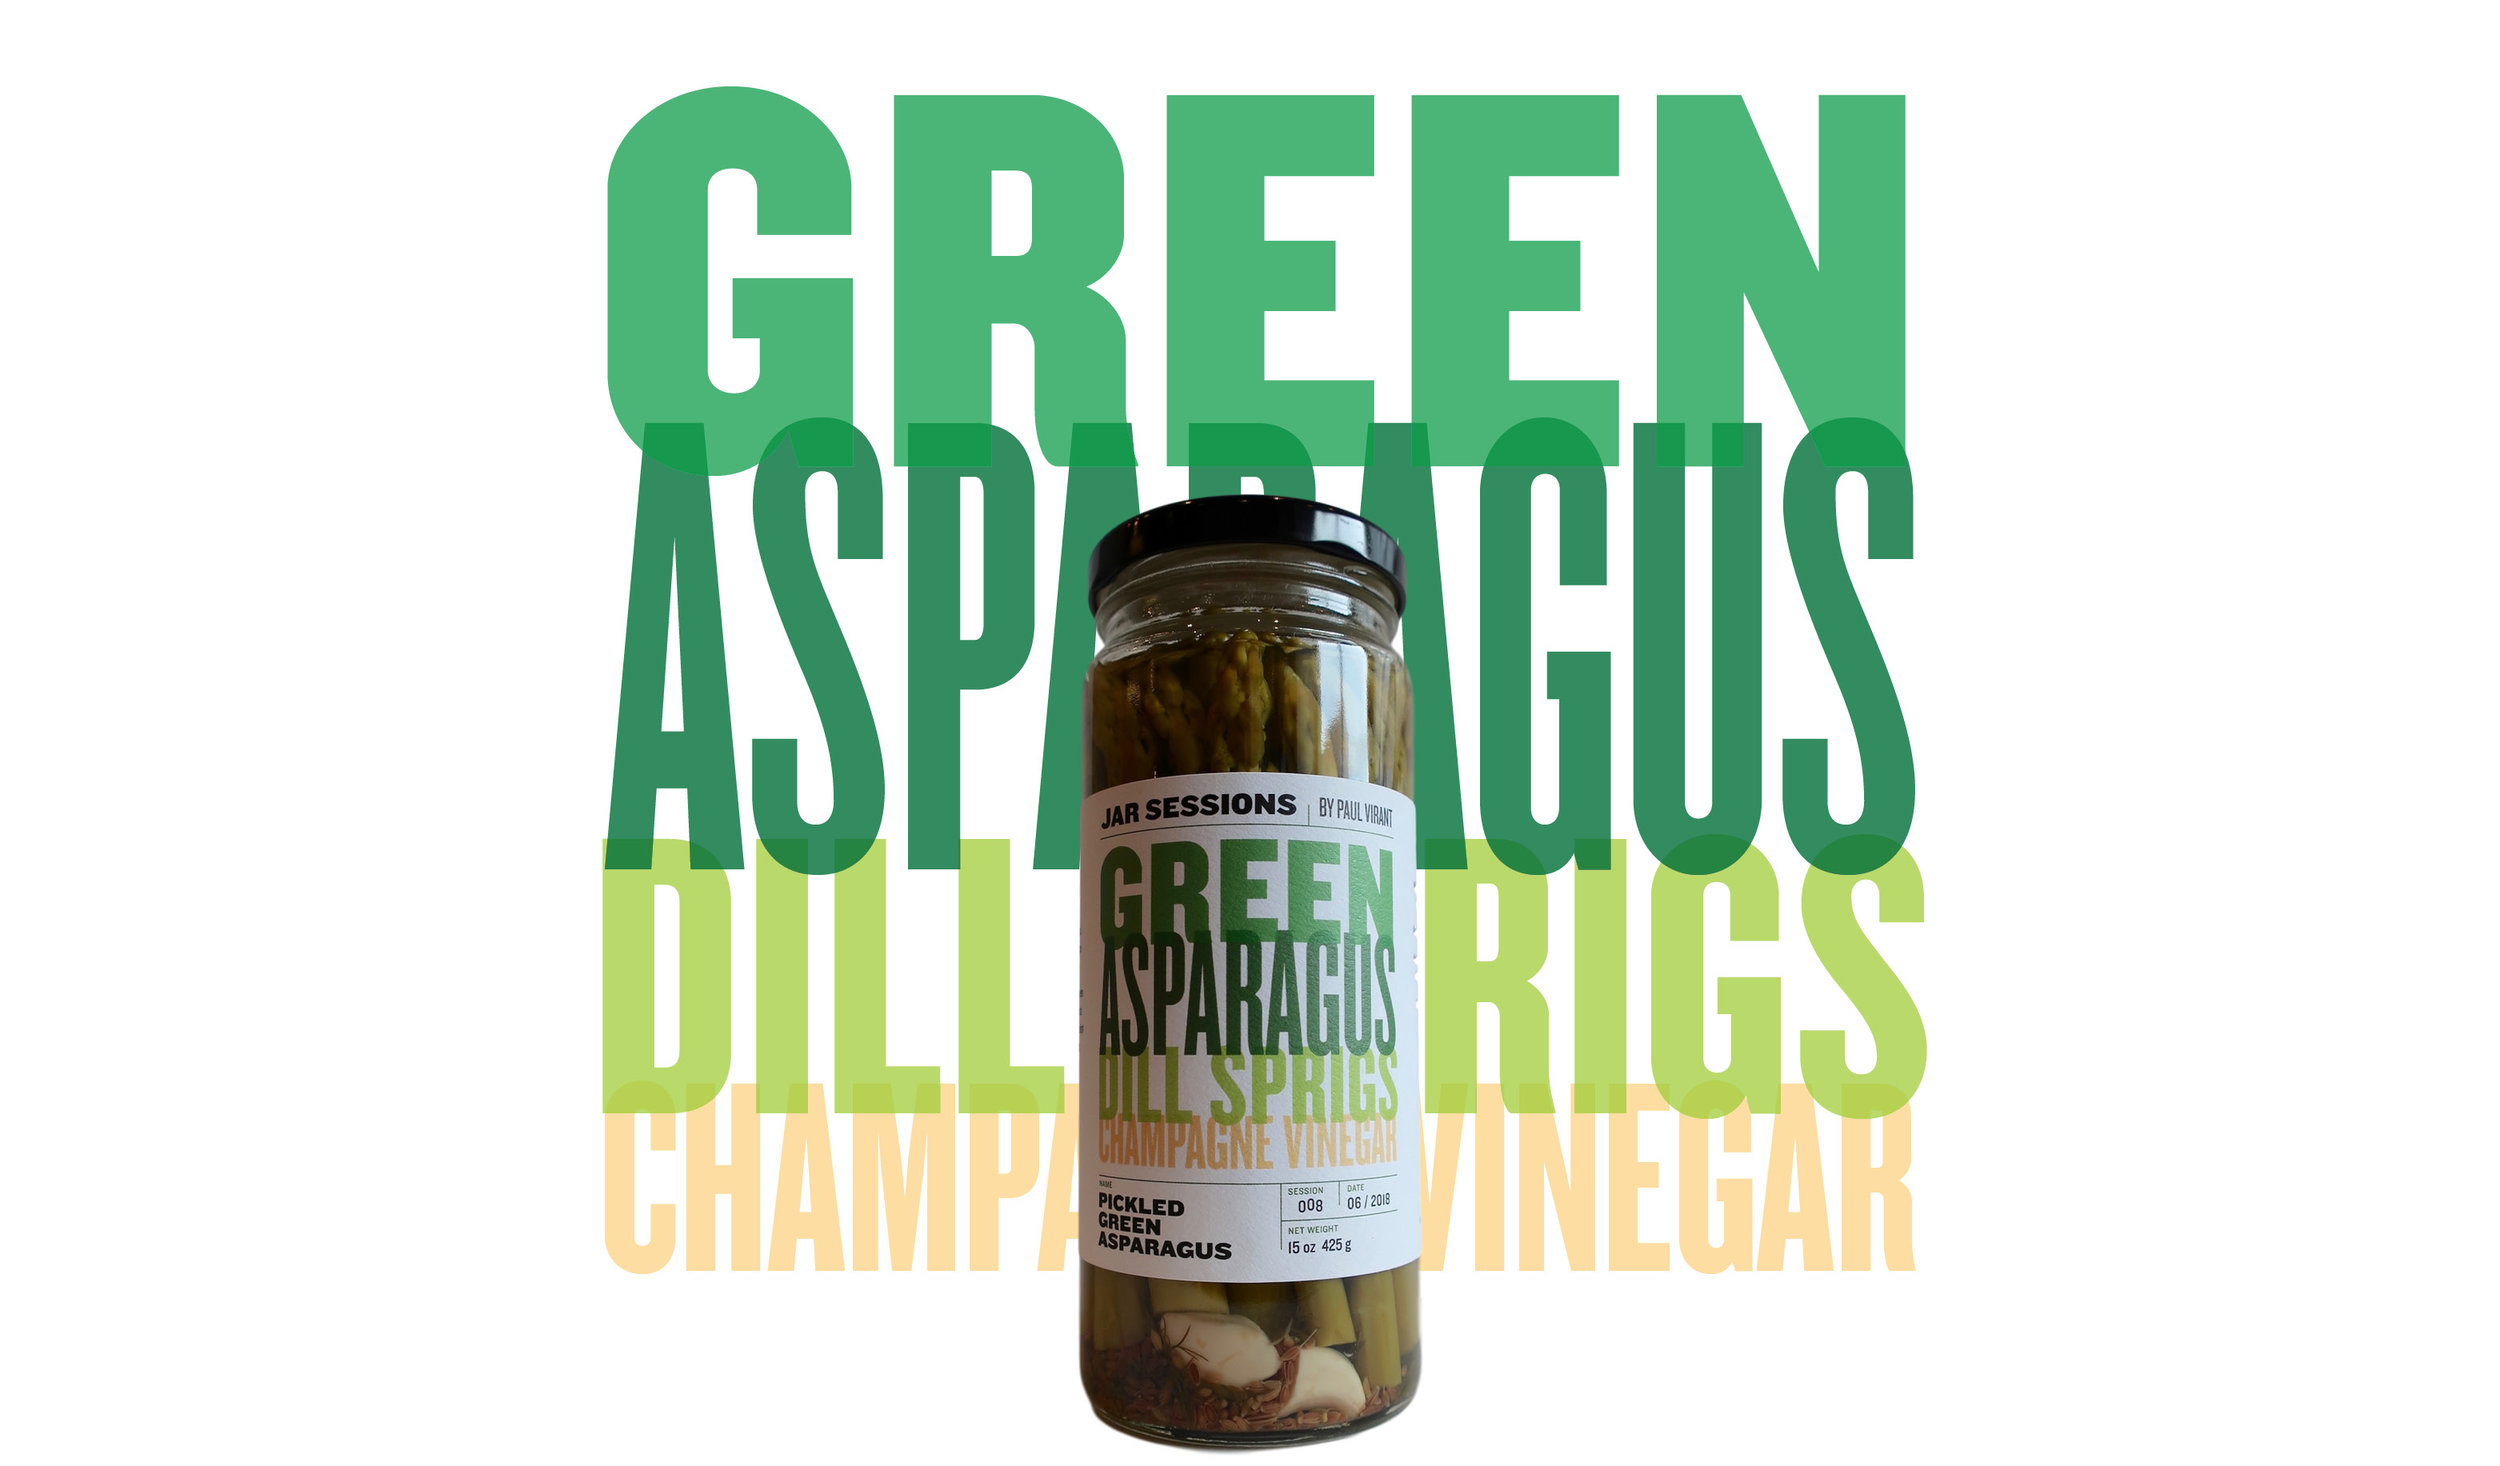 jar-sessions-asparagus-website.jpg